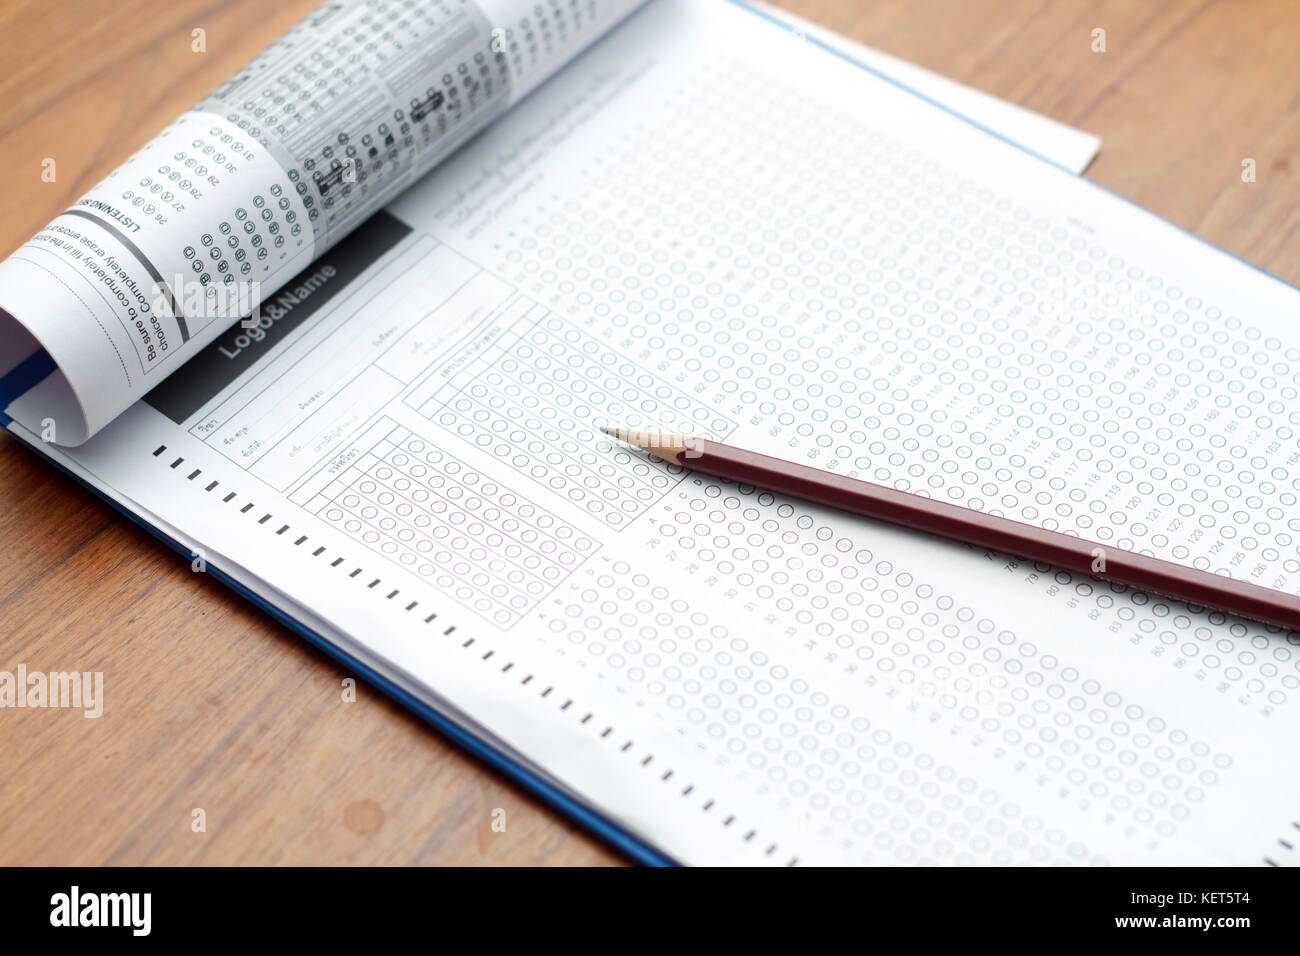 Standardized Test Stockfotos & Standardized Test Bilder - Alamy